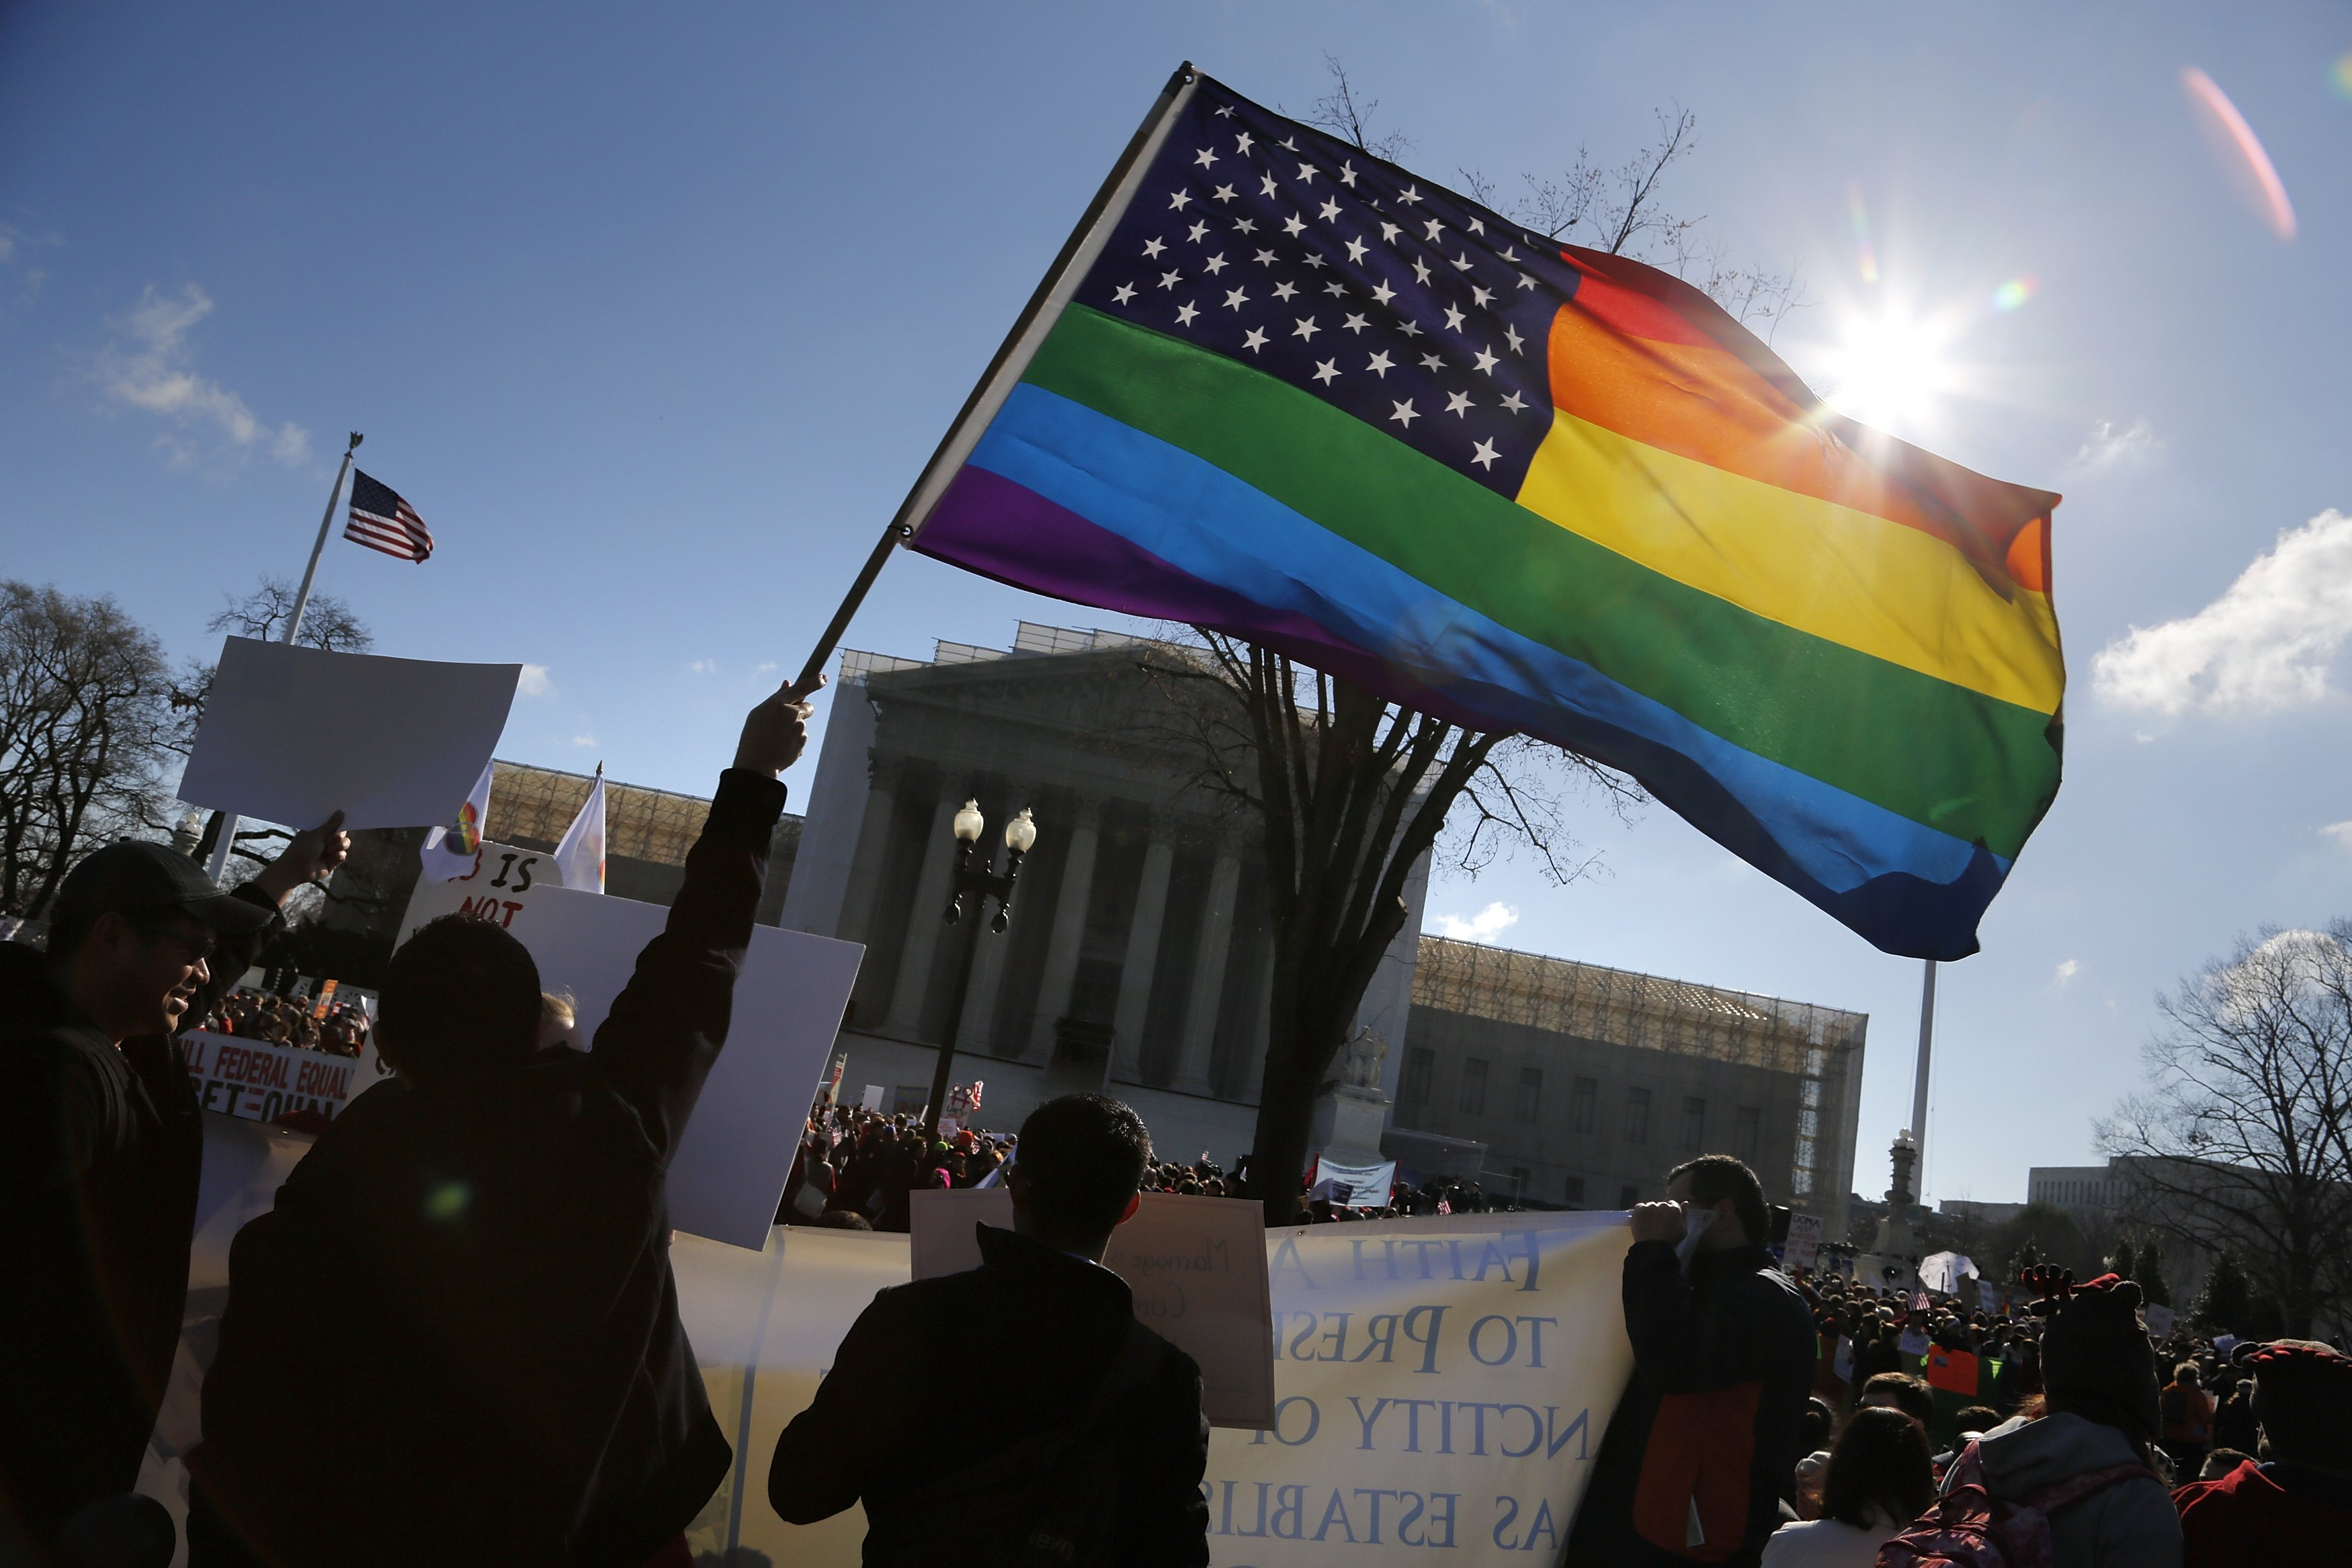 Supreme Court hears arguments in gay marriage case - The